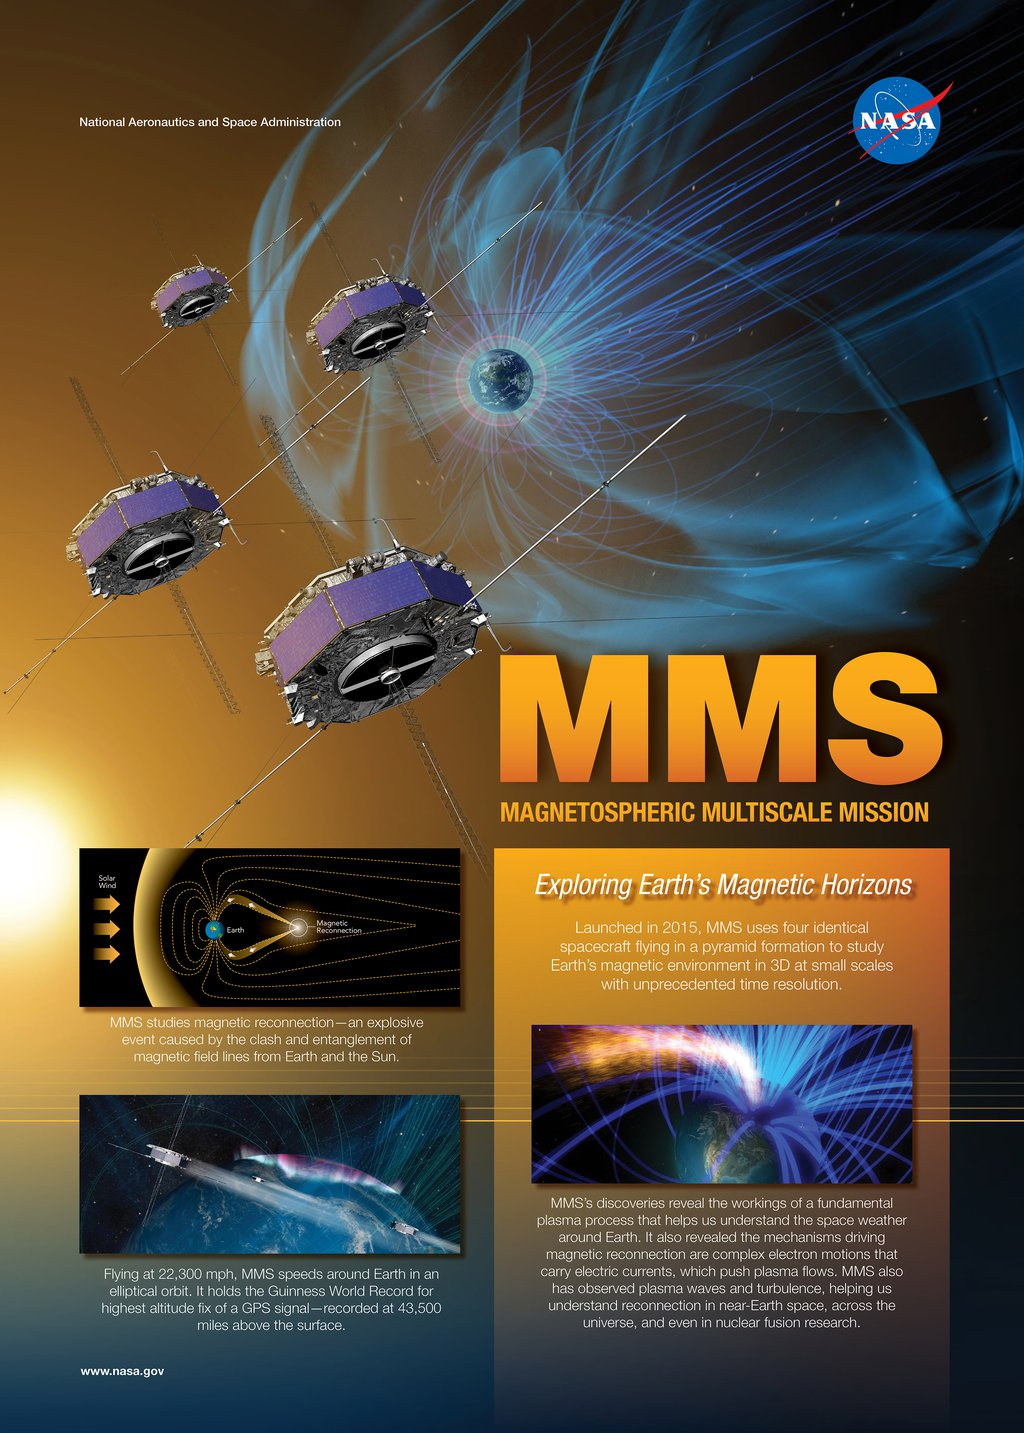 Magnetospheric Multiscale Mission (MMS) - Exploring Earths Magnetic Horizons